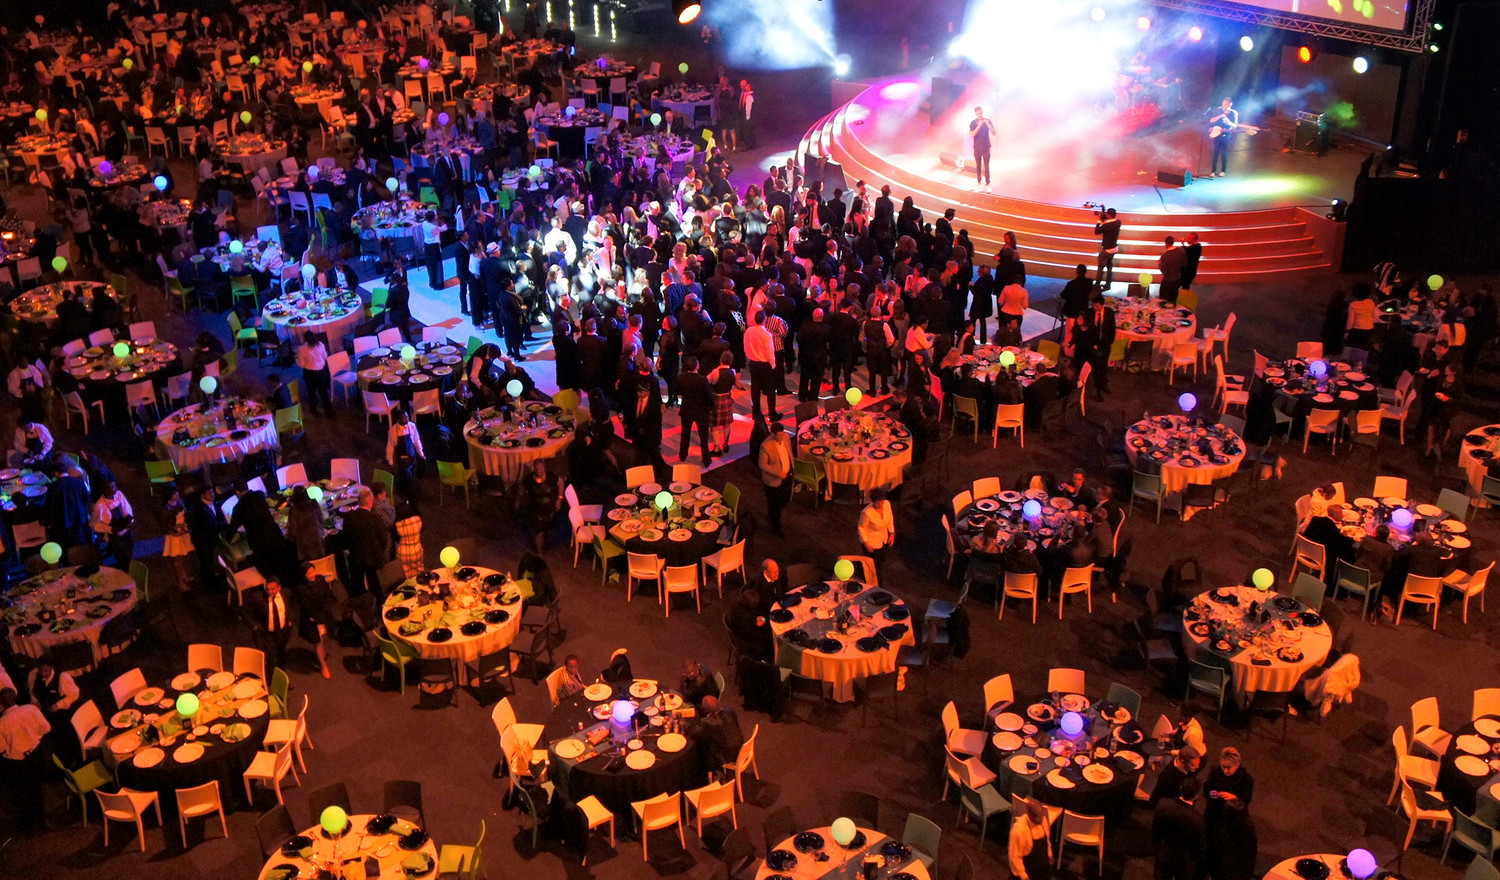 Galas with live entertainment